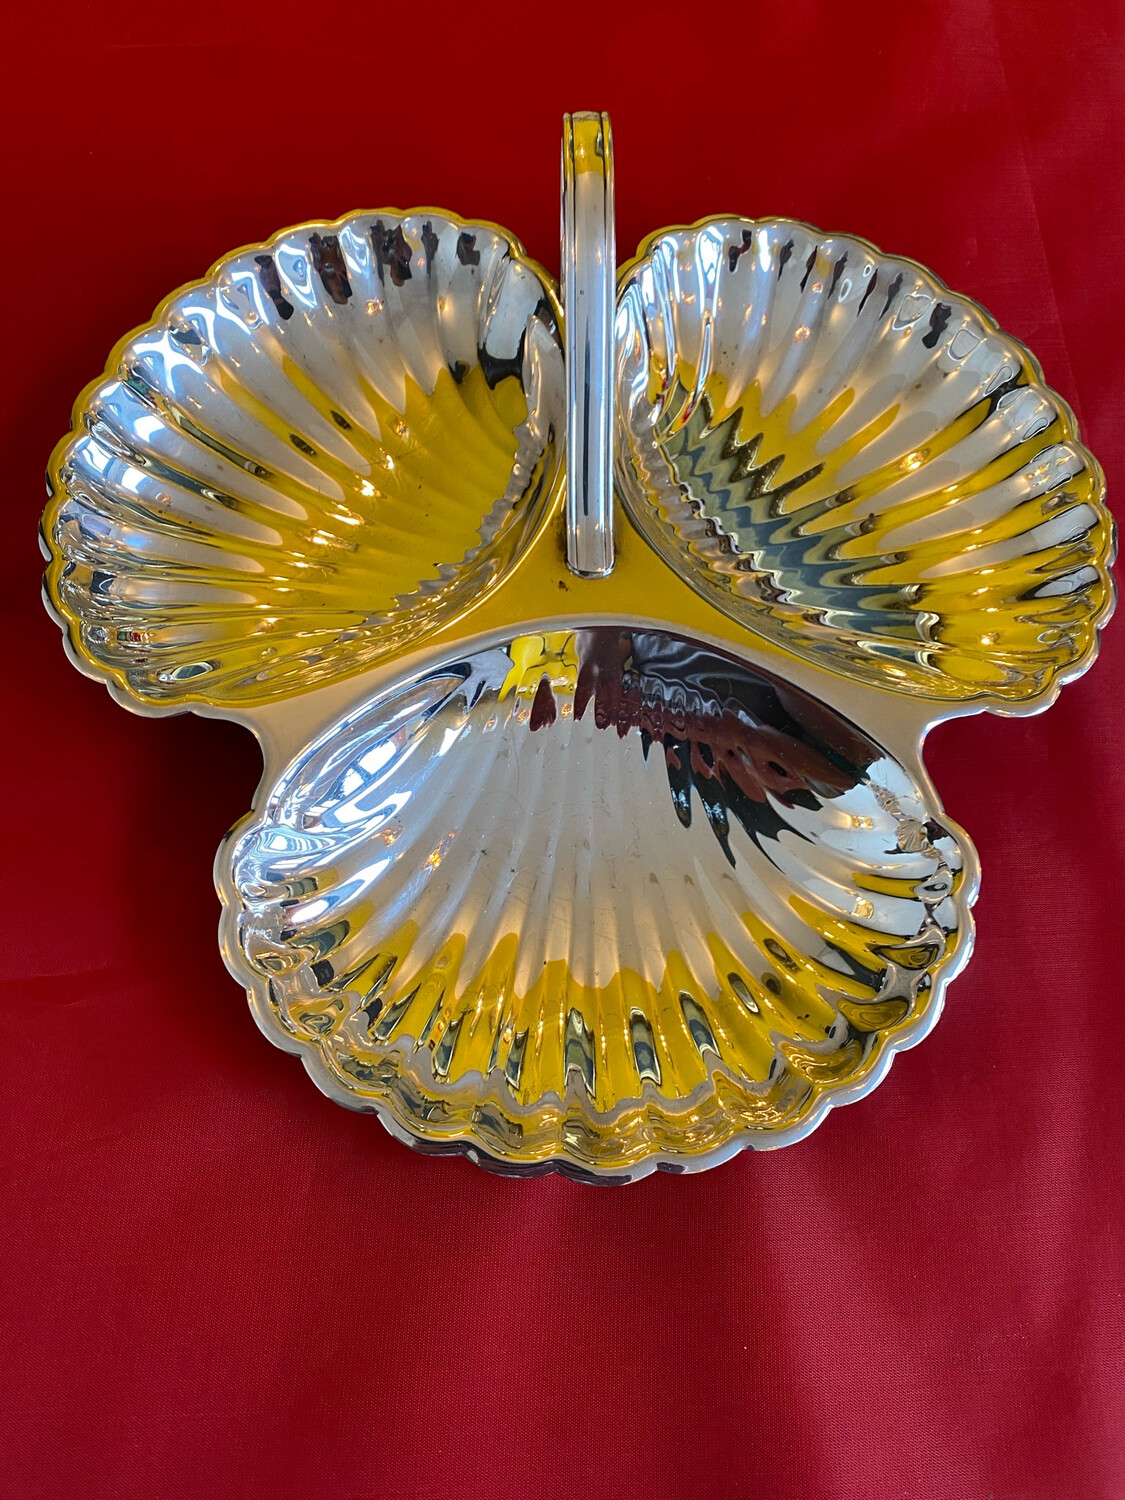 Silver Plated Scallop Dish - Electro Plated Copper